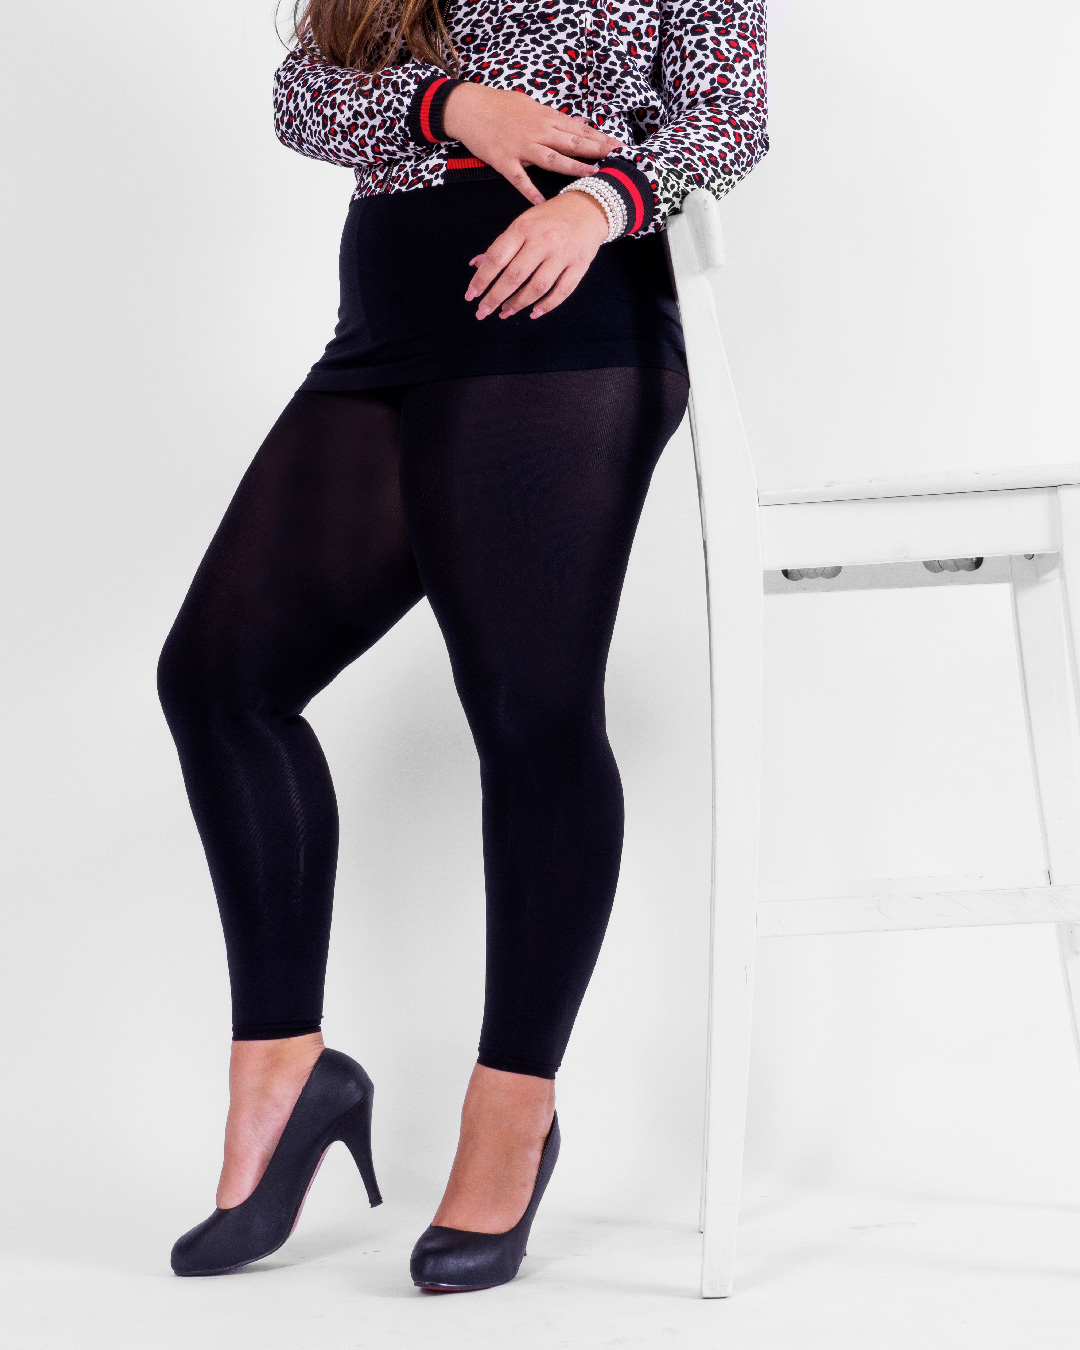 personalsize-exclusive-leggings-exclusive-prd_001.jpg